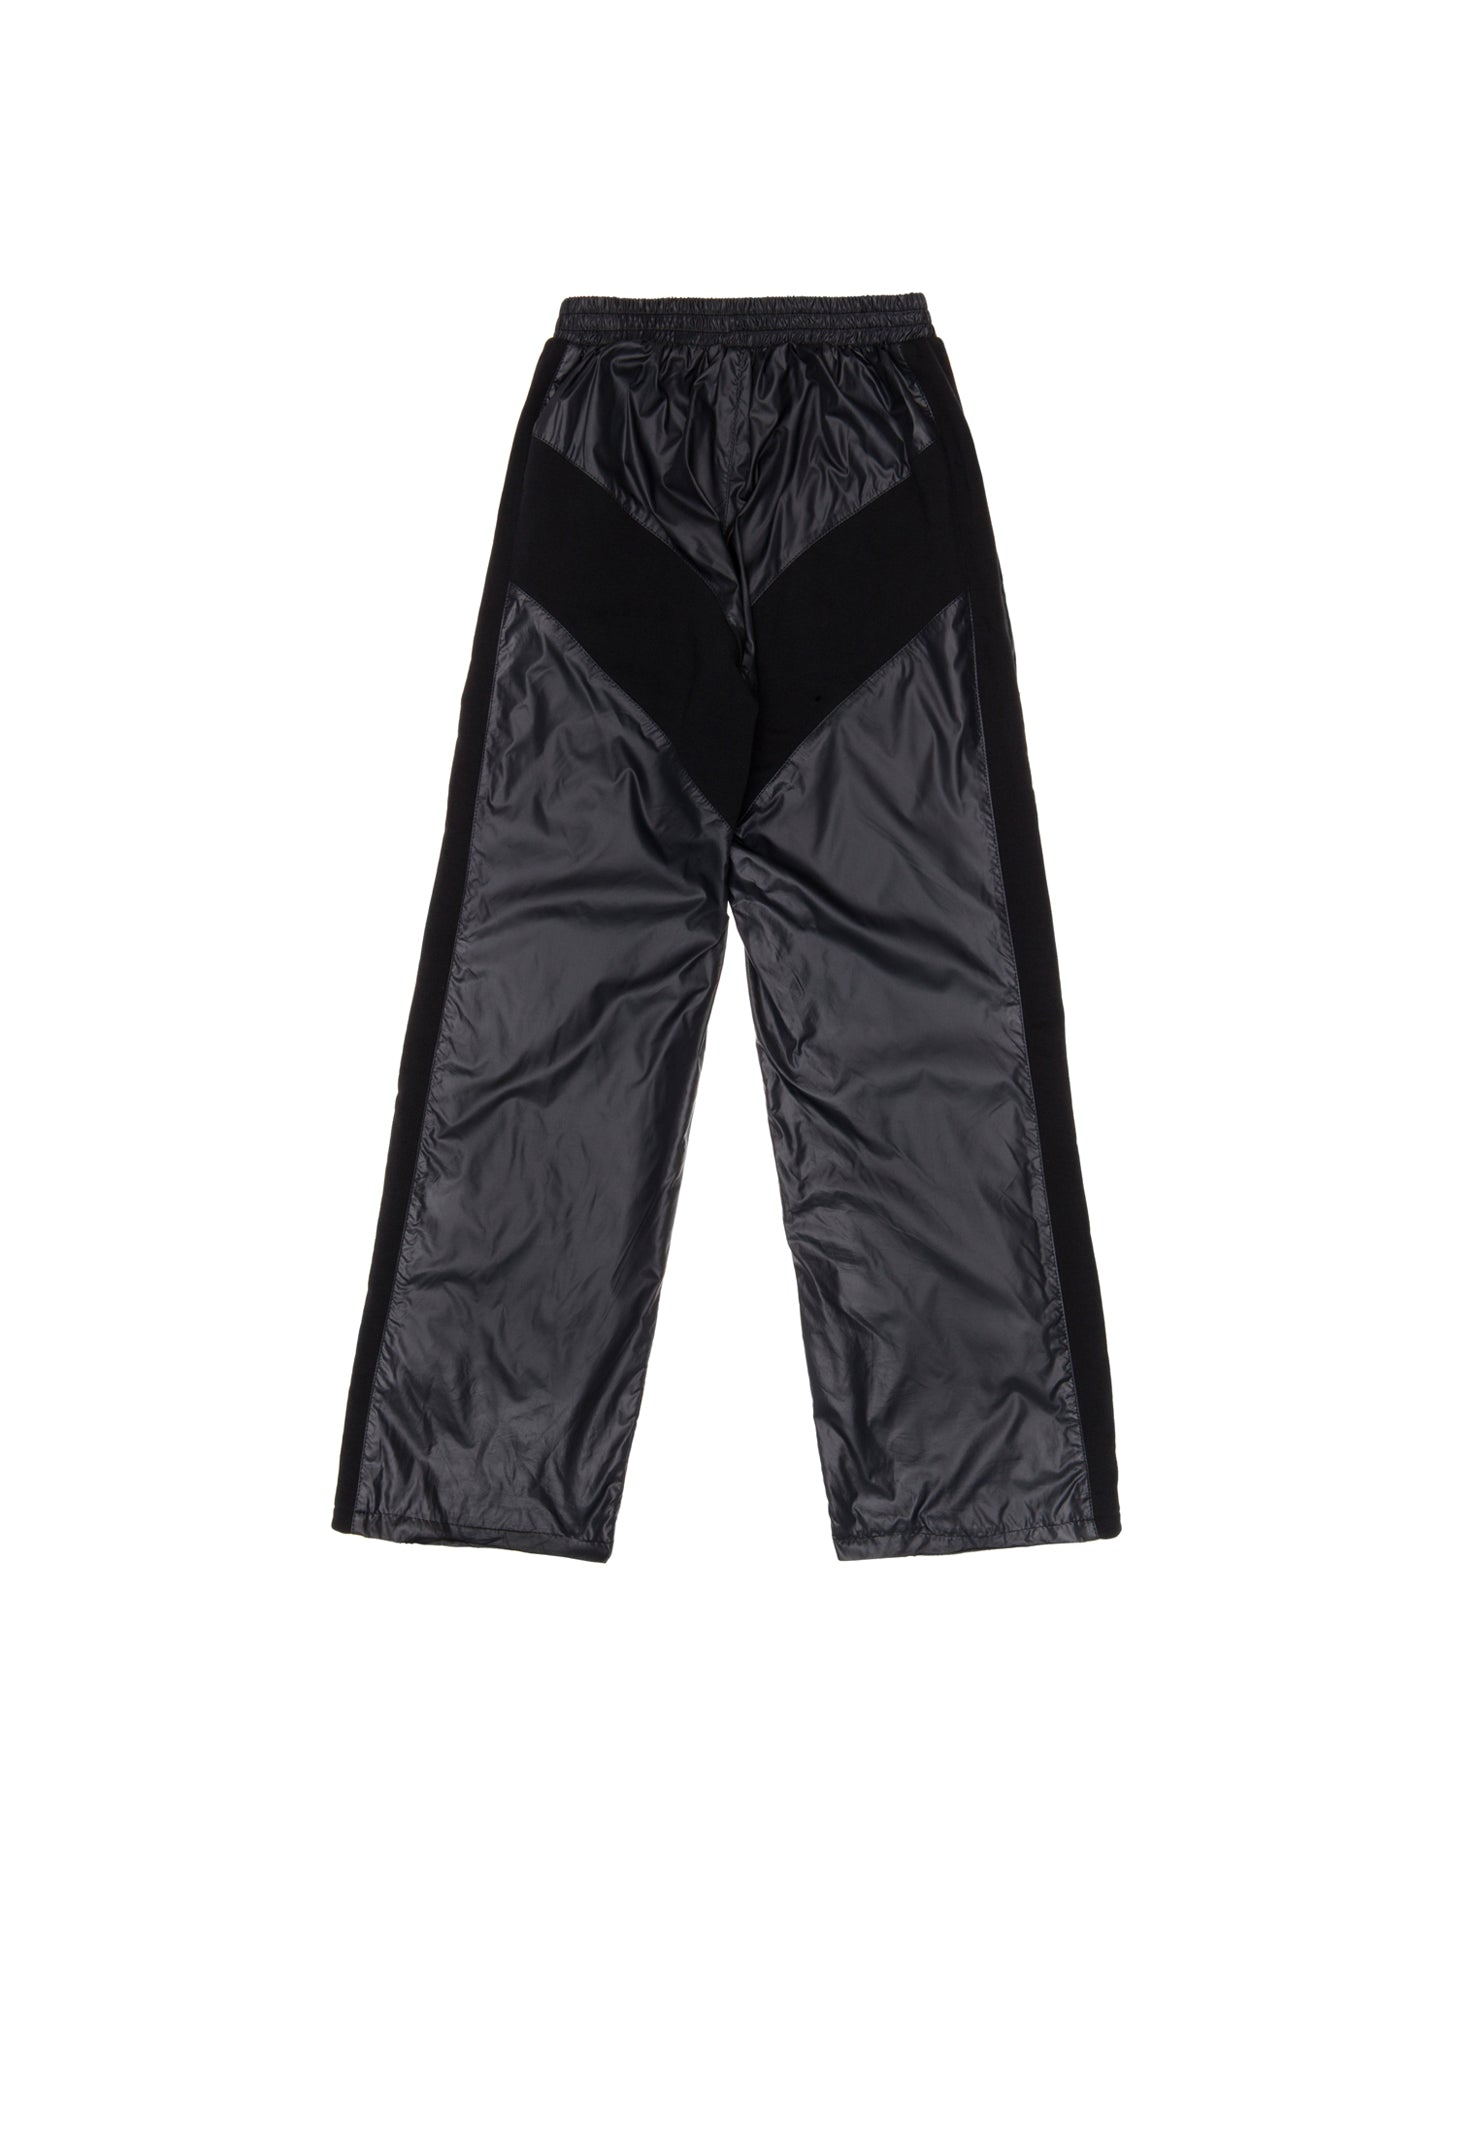 Outlaw Big Frame Logo Black Tracksuit Pants